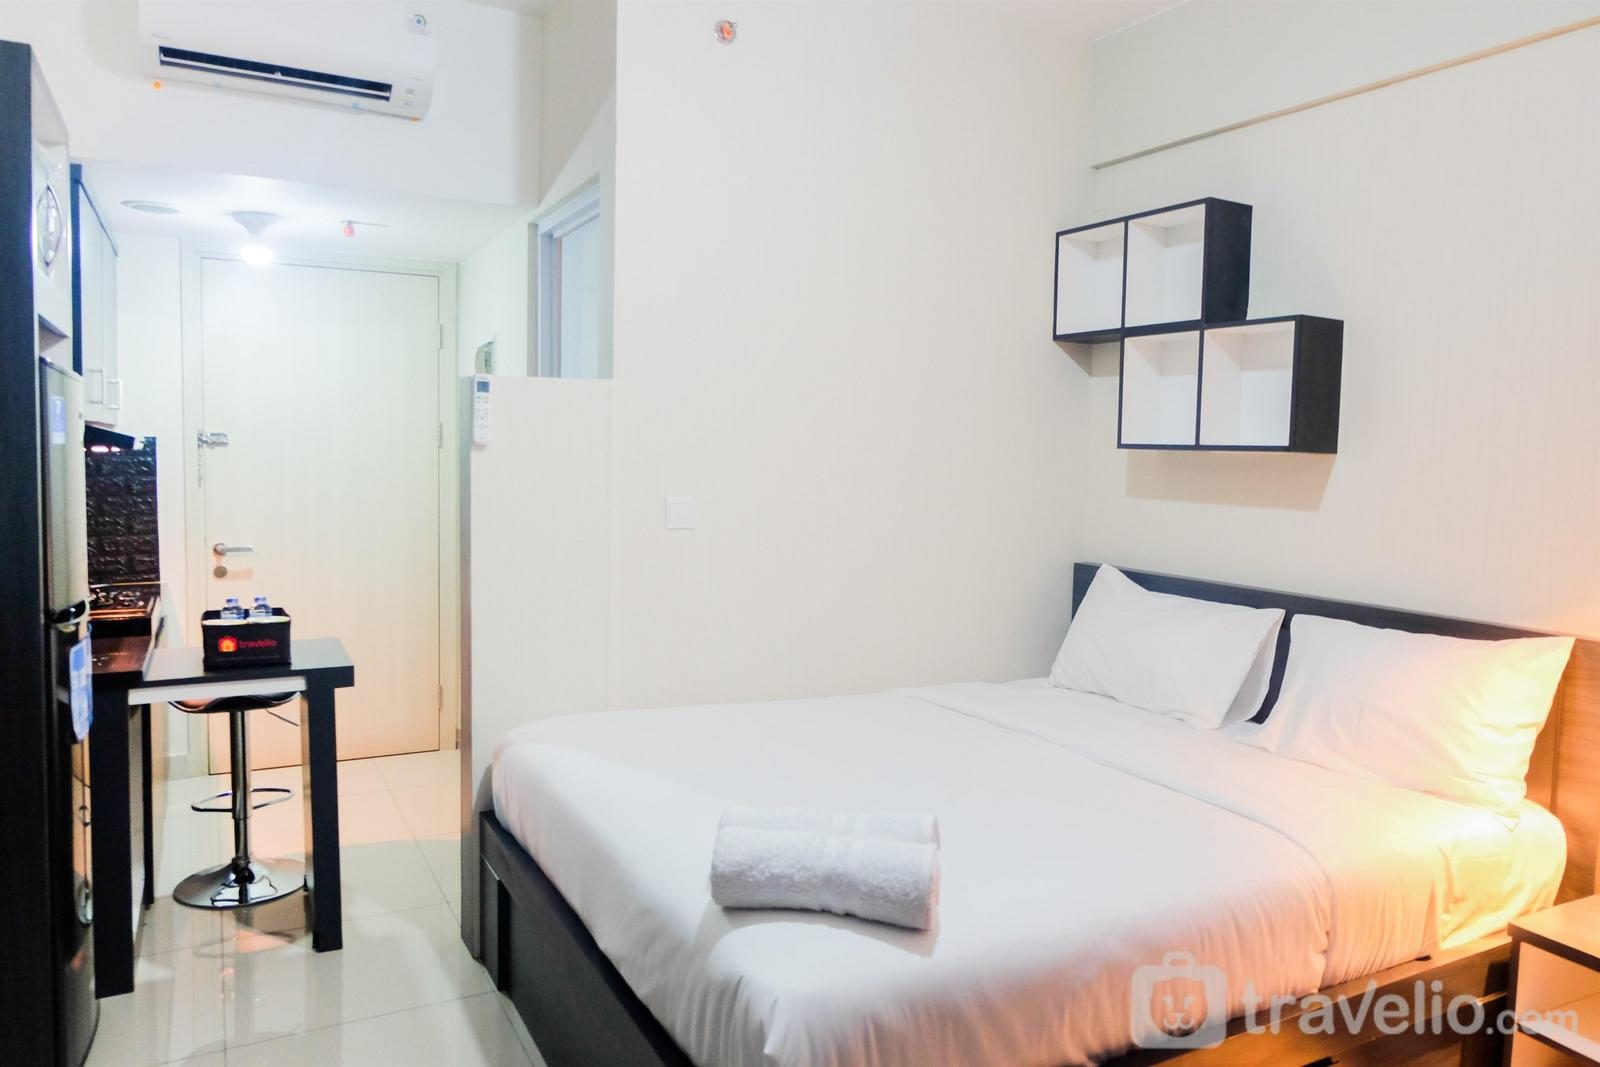 Apartemen Springlake Summarecon Bekasi - Strategic Location Studio Springlake Apartment By Travelio